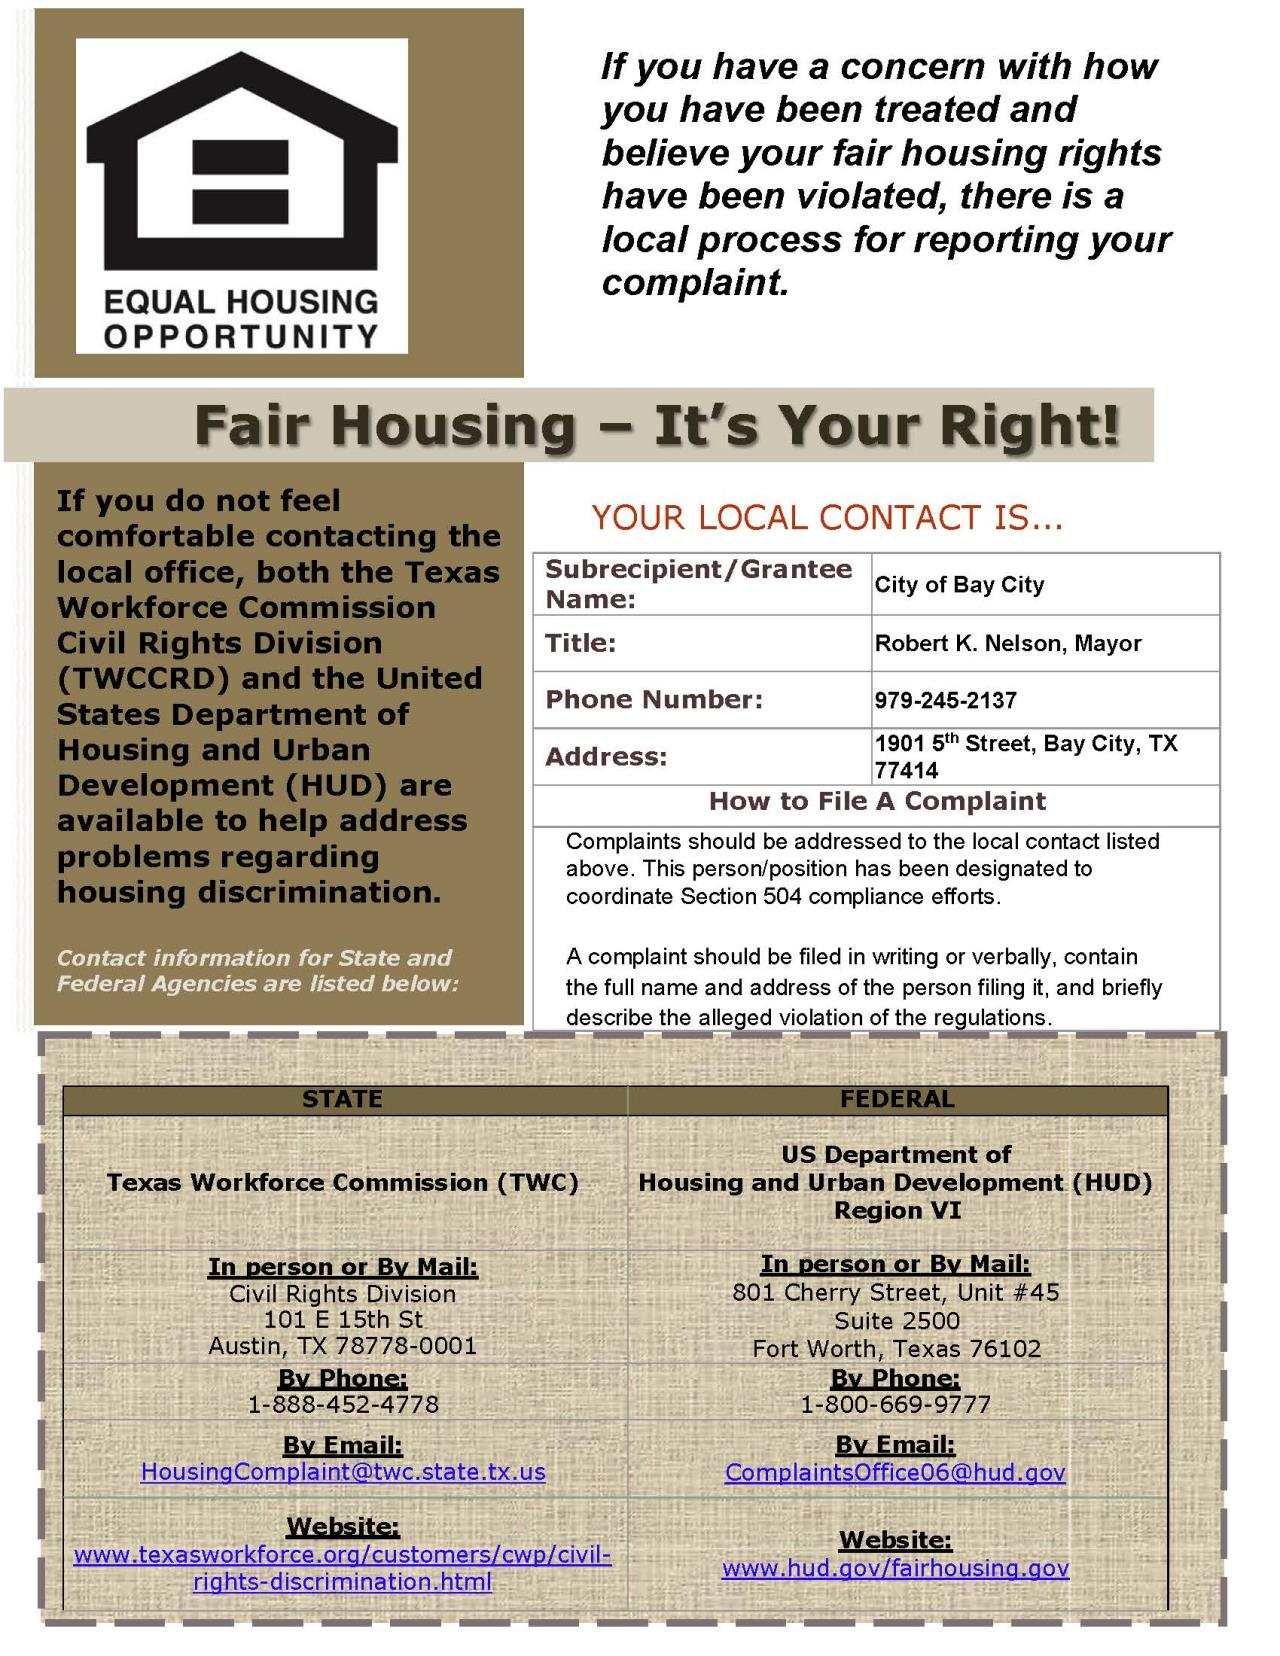 Fair Housing Poster (PDF) Opens in new window